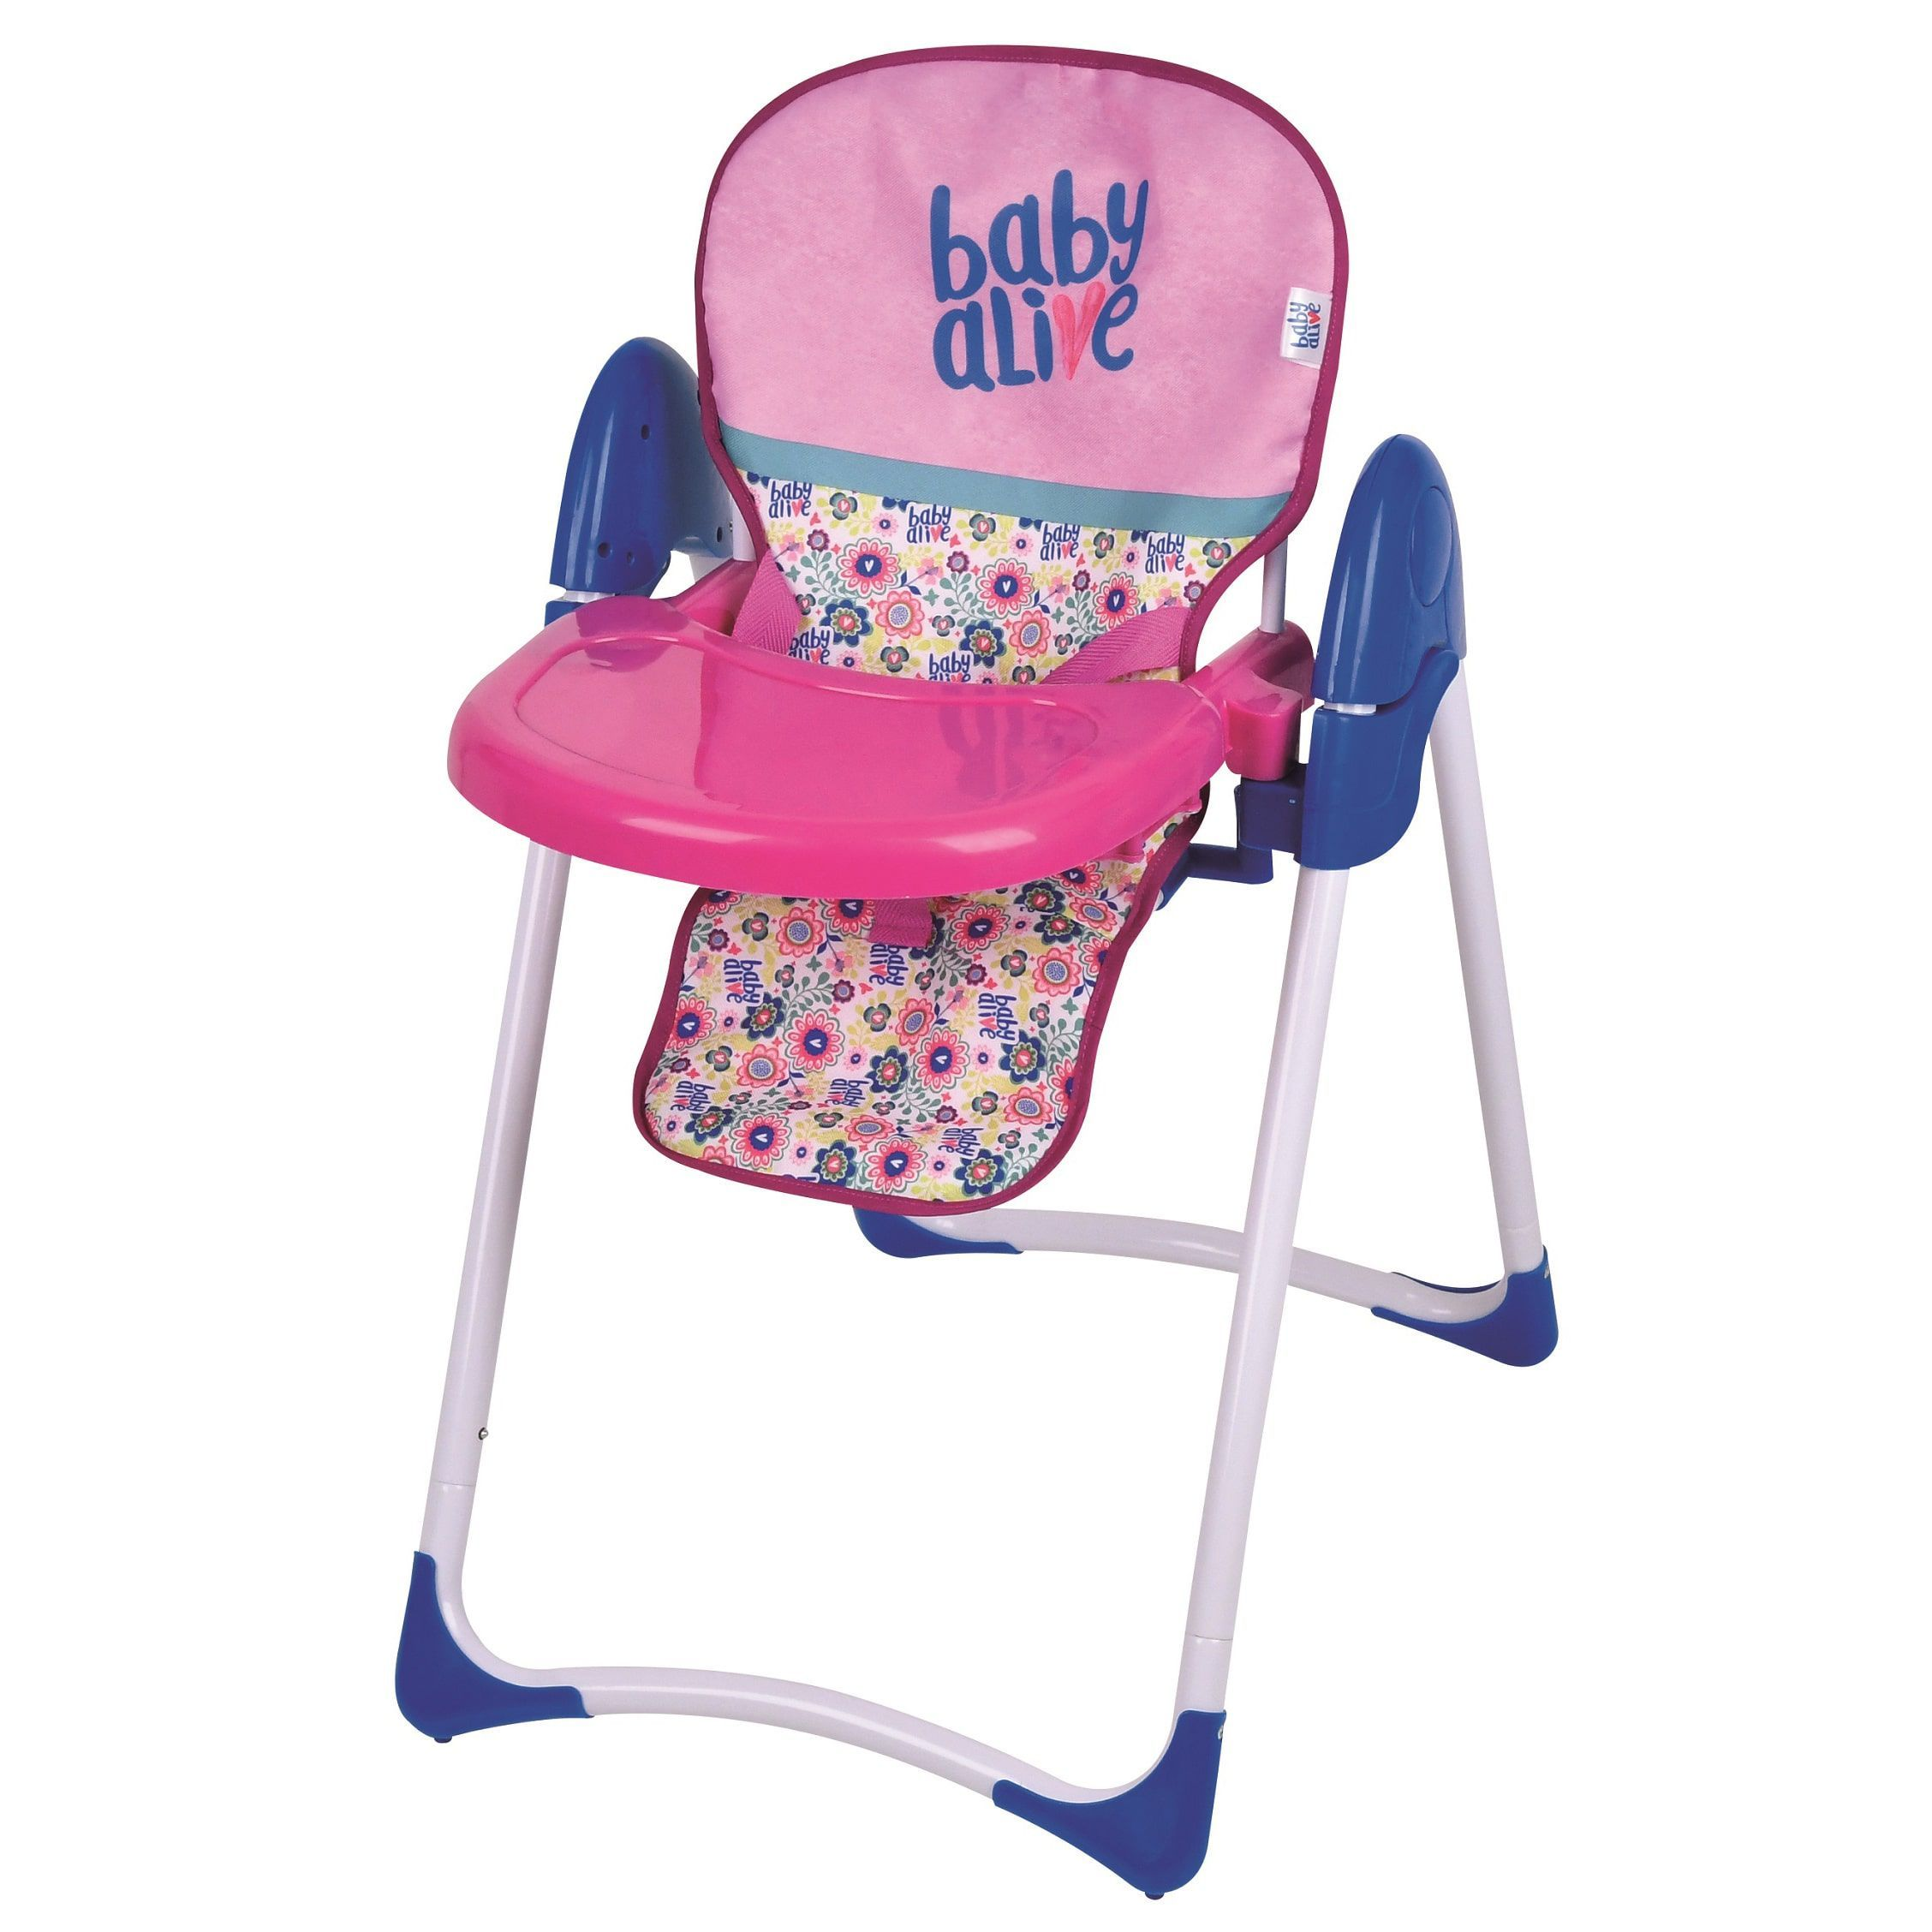 Elmo folding chair - Hauck Hasbro Baby Alive Doll Deluxe High Chair